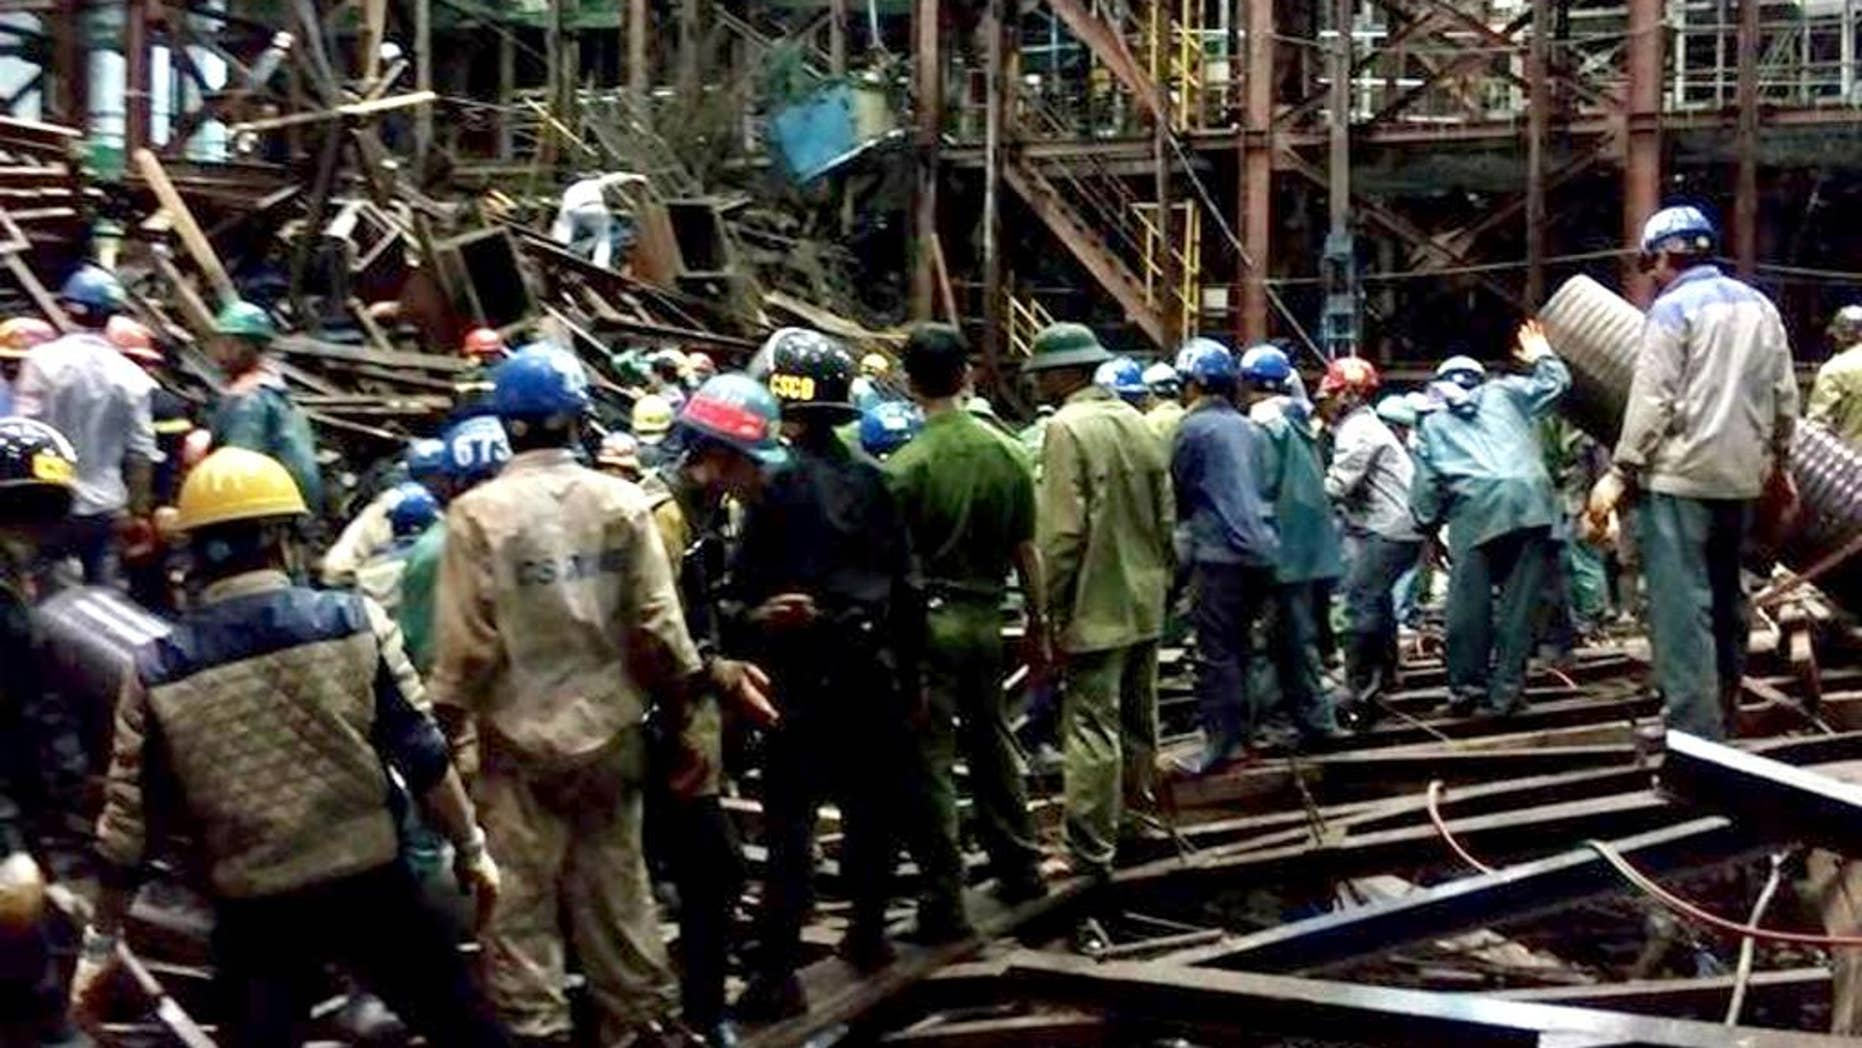 In this Wednesday March 25, 2015 photo, rescuers work through the rubble trying to find survivors after scaffolding collapsed in an economic zone in Ha Tinh province in central Vietnam. Police says at least 14 people were killed and 28 others were injured in the incident. (AP Photo/Vietnam News Agency, Cong Tuong)